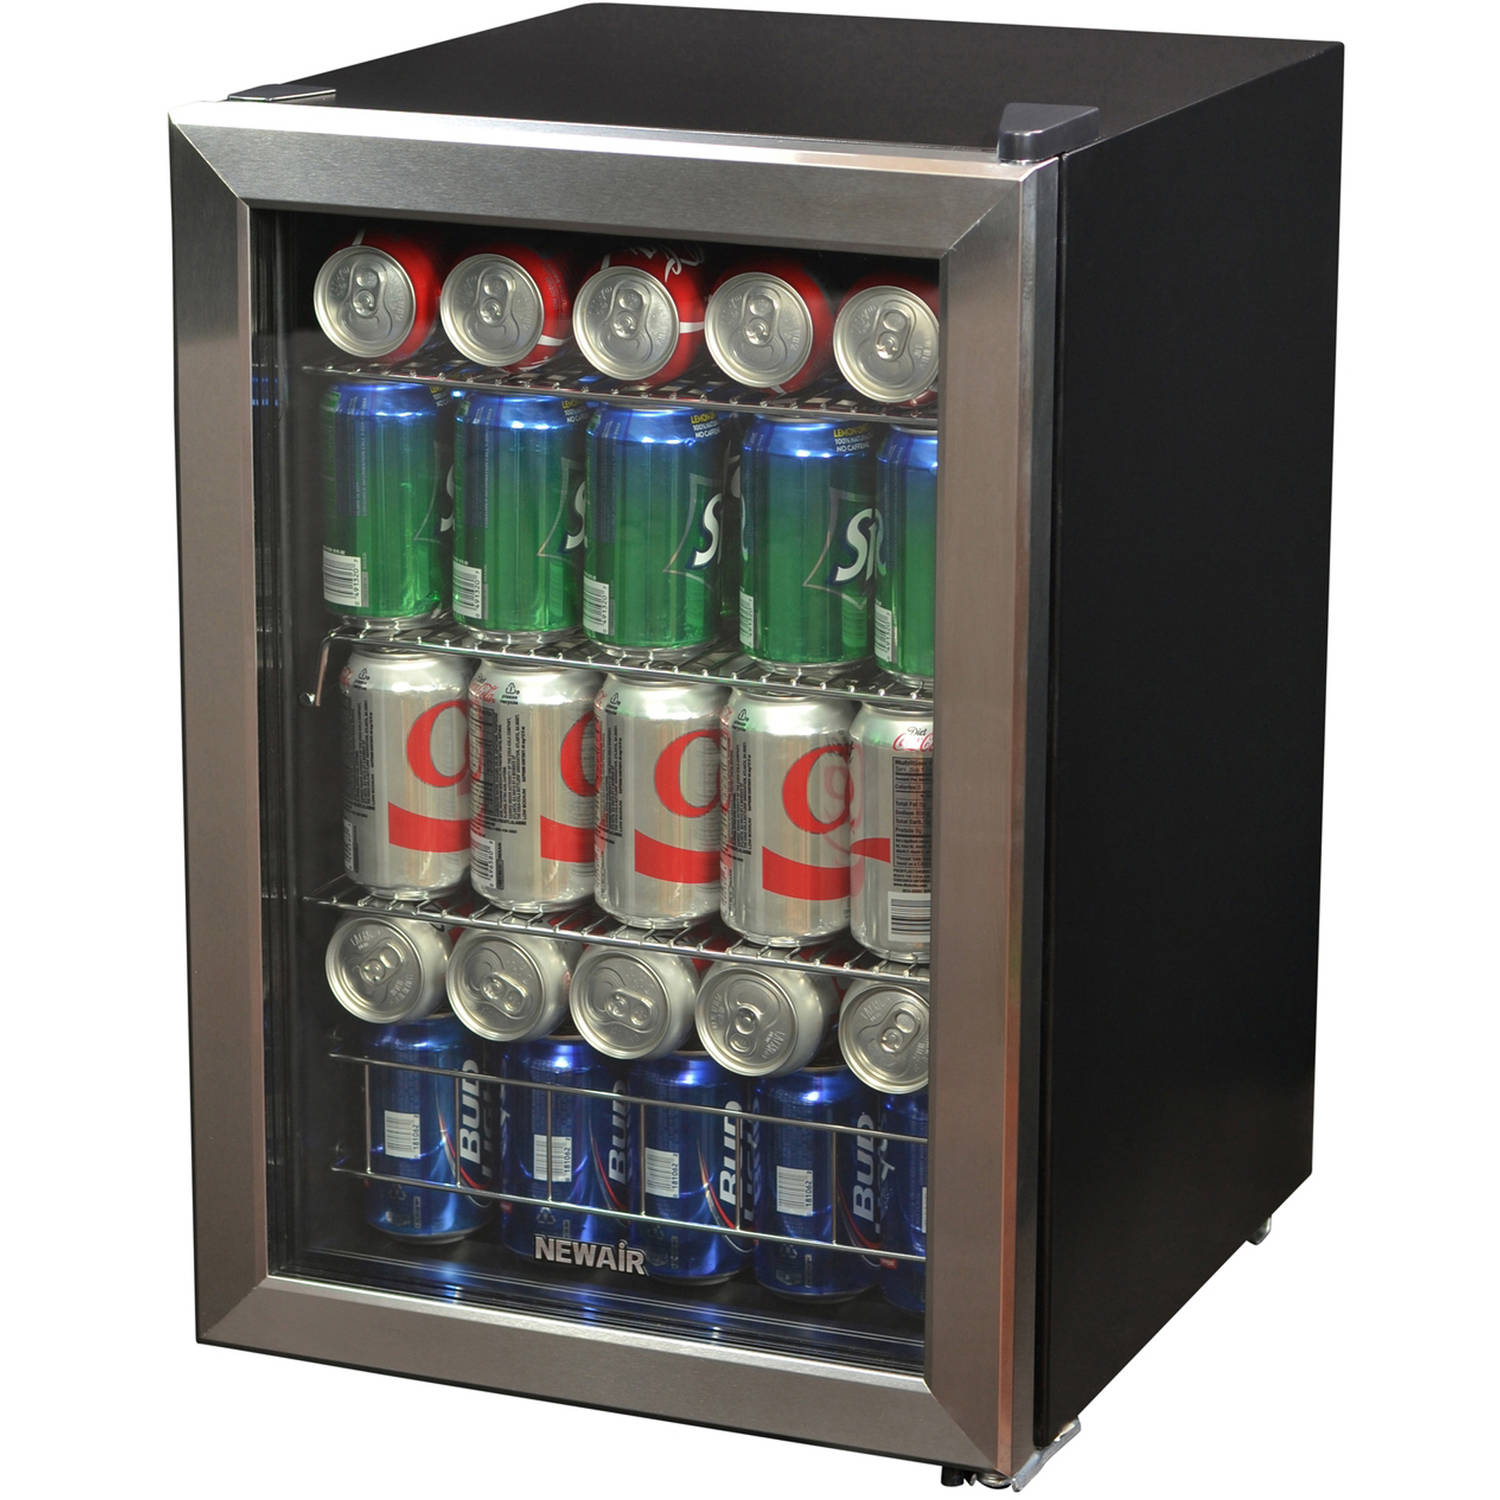 Newair AB-850 84-Can Stainless Steel Beverage Cooler